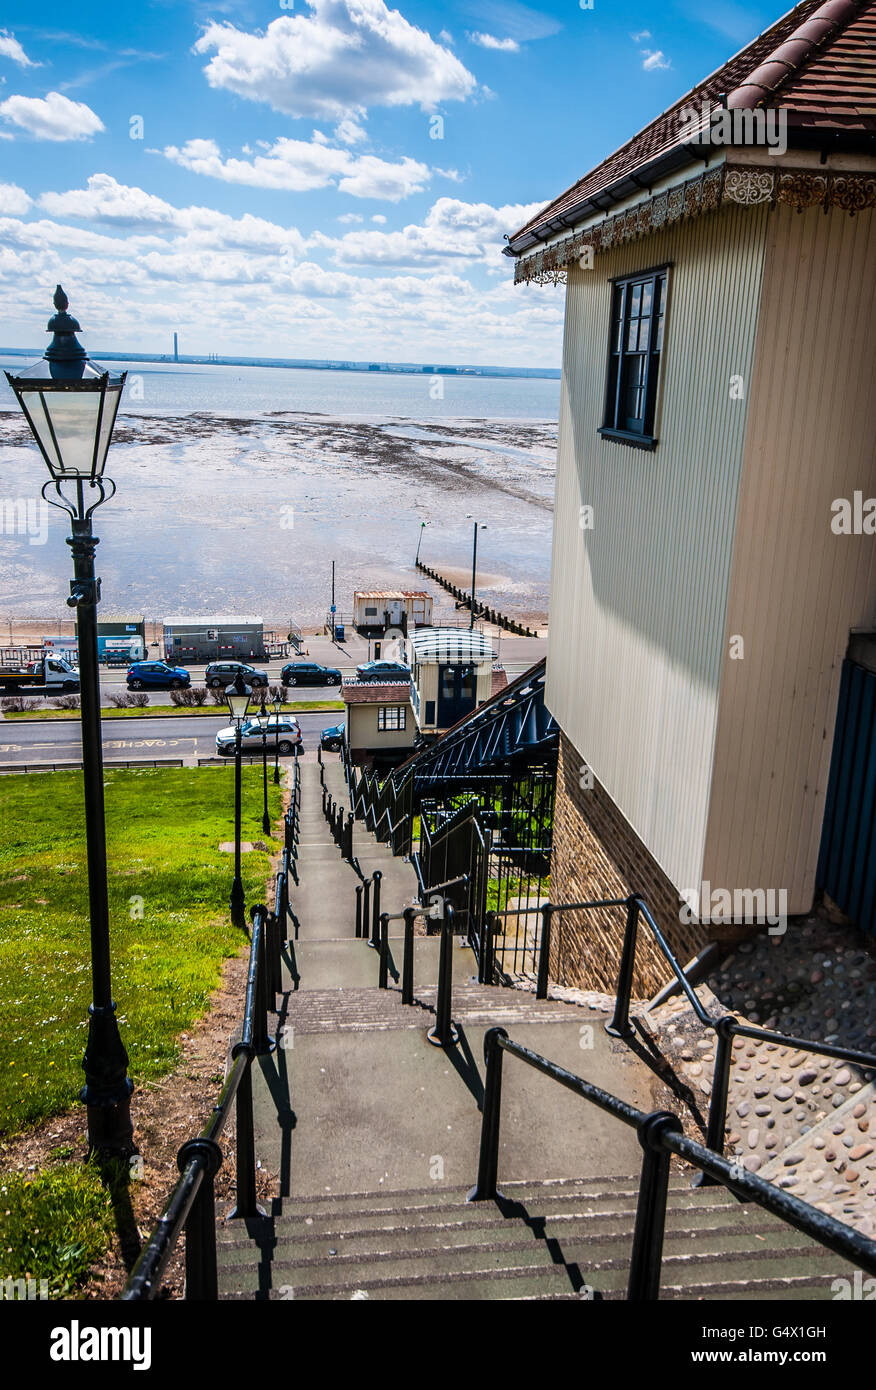 Southend Cliff Railway, or Southend Cliff Lift, is a funicular in the English seaside resort of Southend-on-Sea, - Stock Image